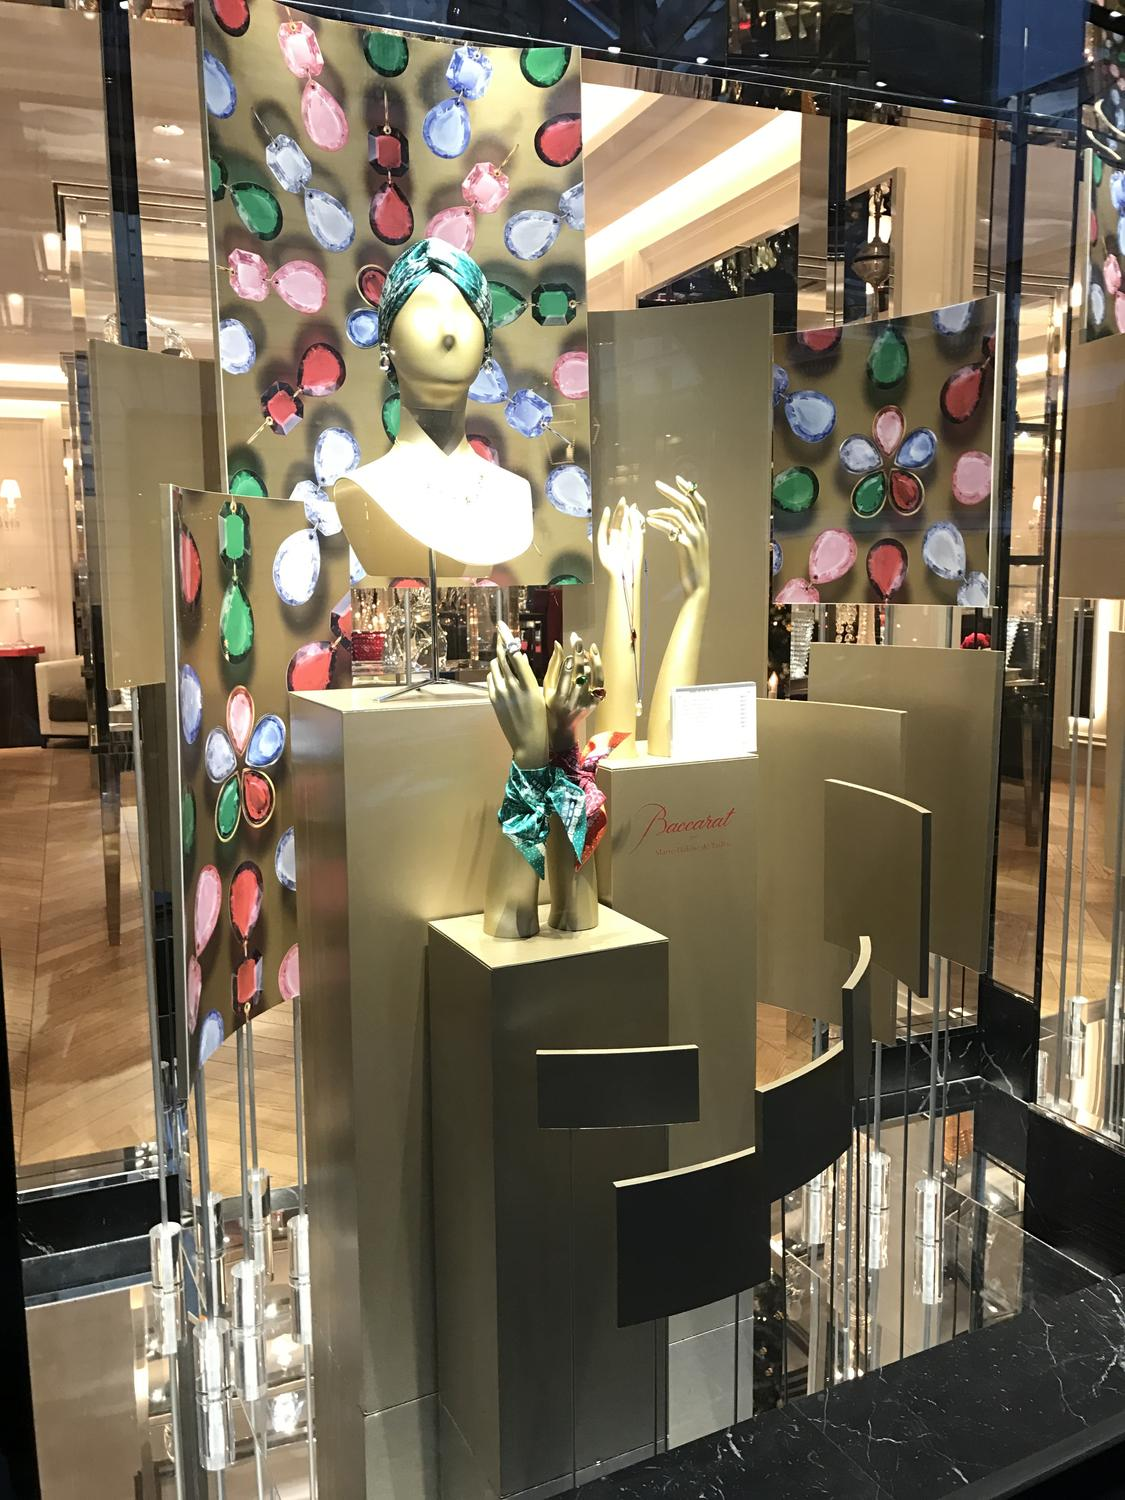 Shop window's decor for Baccarat.